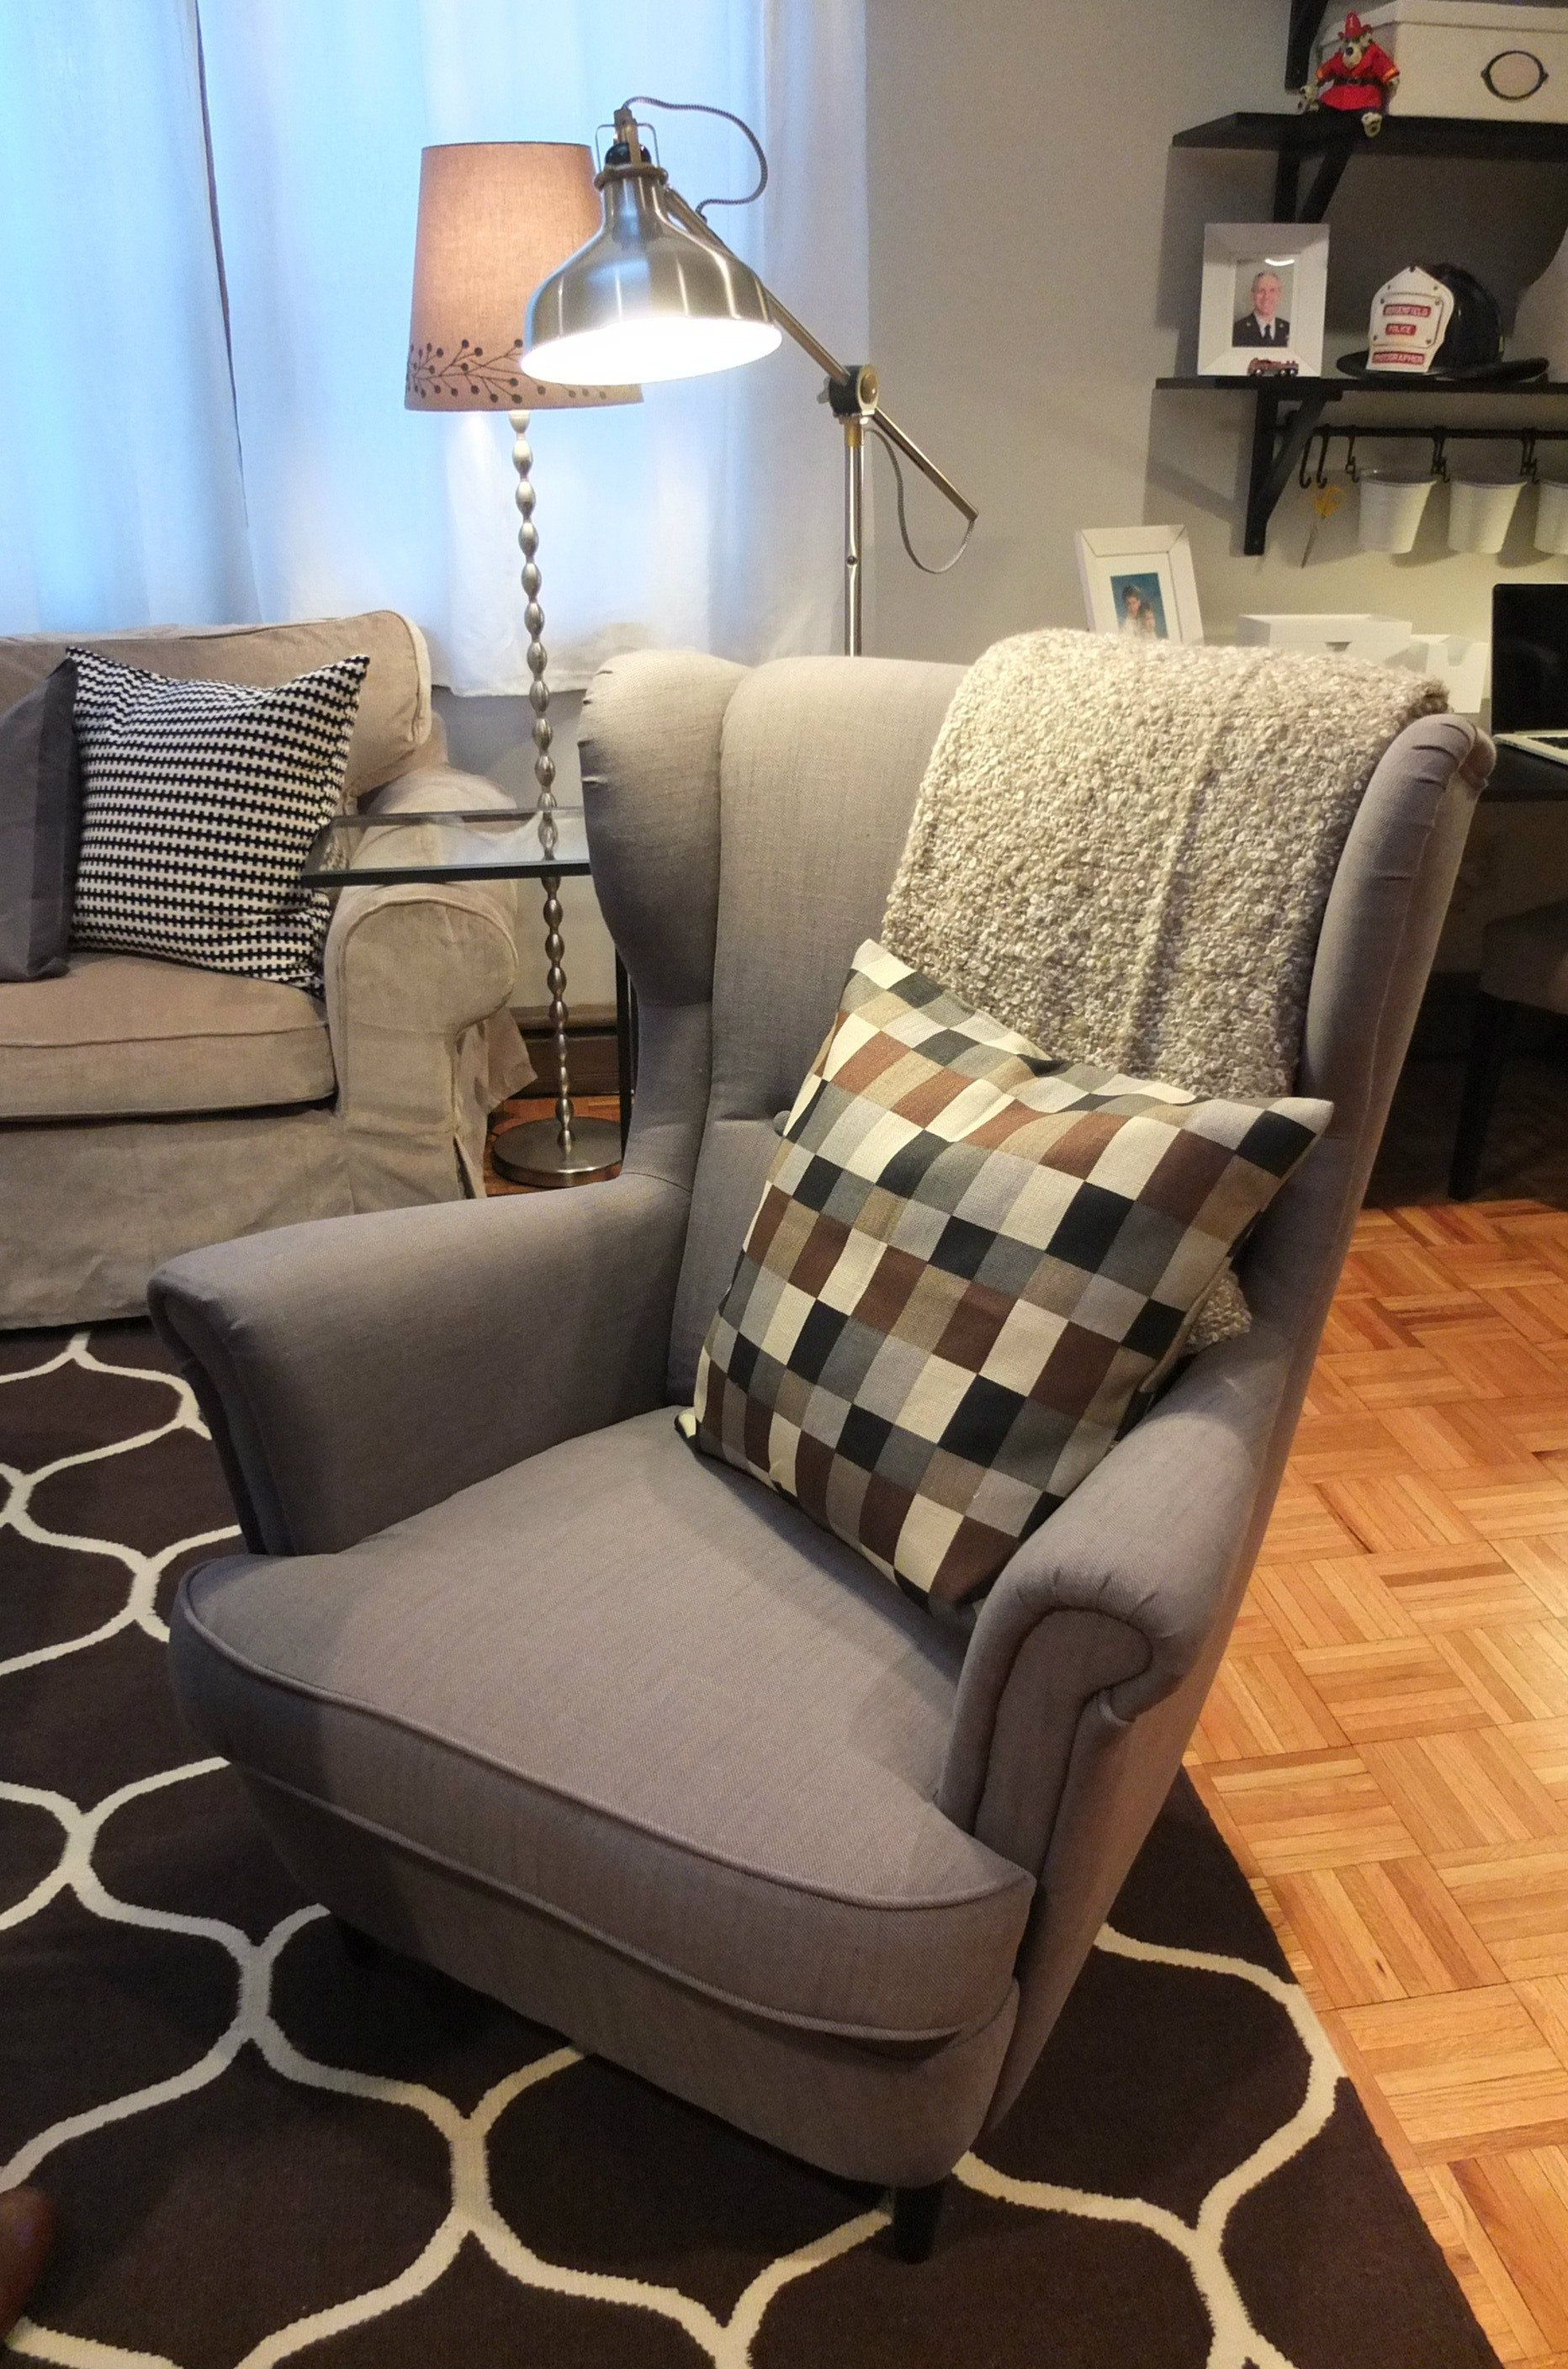 Strandmon Wing Chair Review Rocking For Nursery Aldi The Ikea Is A Comfortable Piece With Classic Look Great Reading And Relaxing